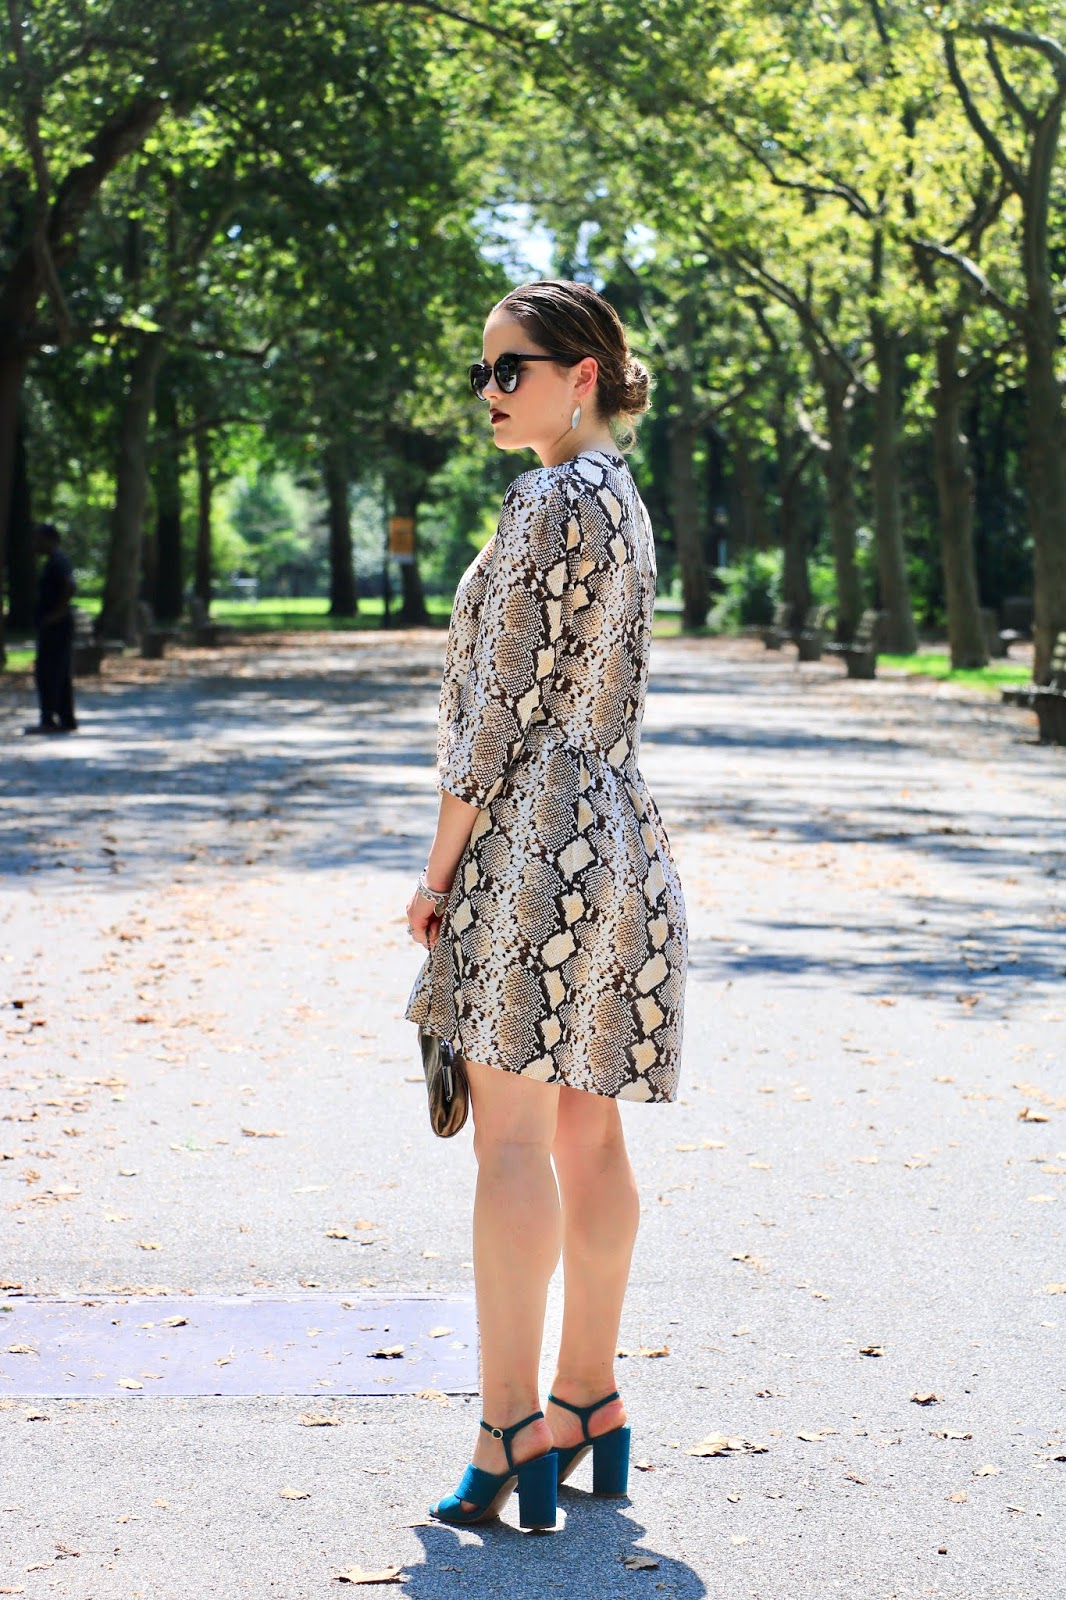 Nyc fashion blogger Kathleen Harper wearing an Anthropologie python print dress.